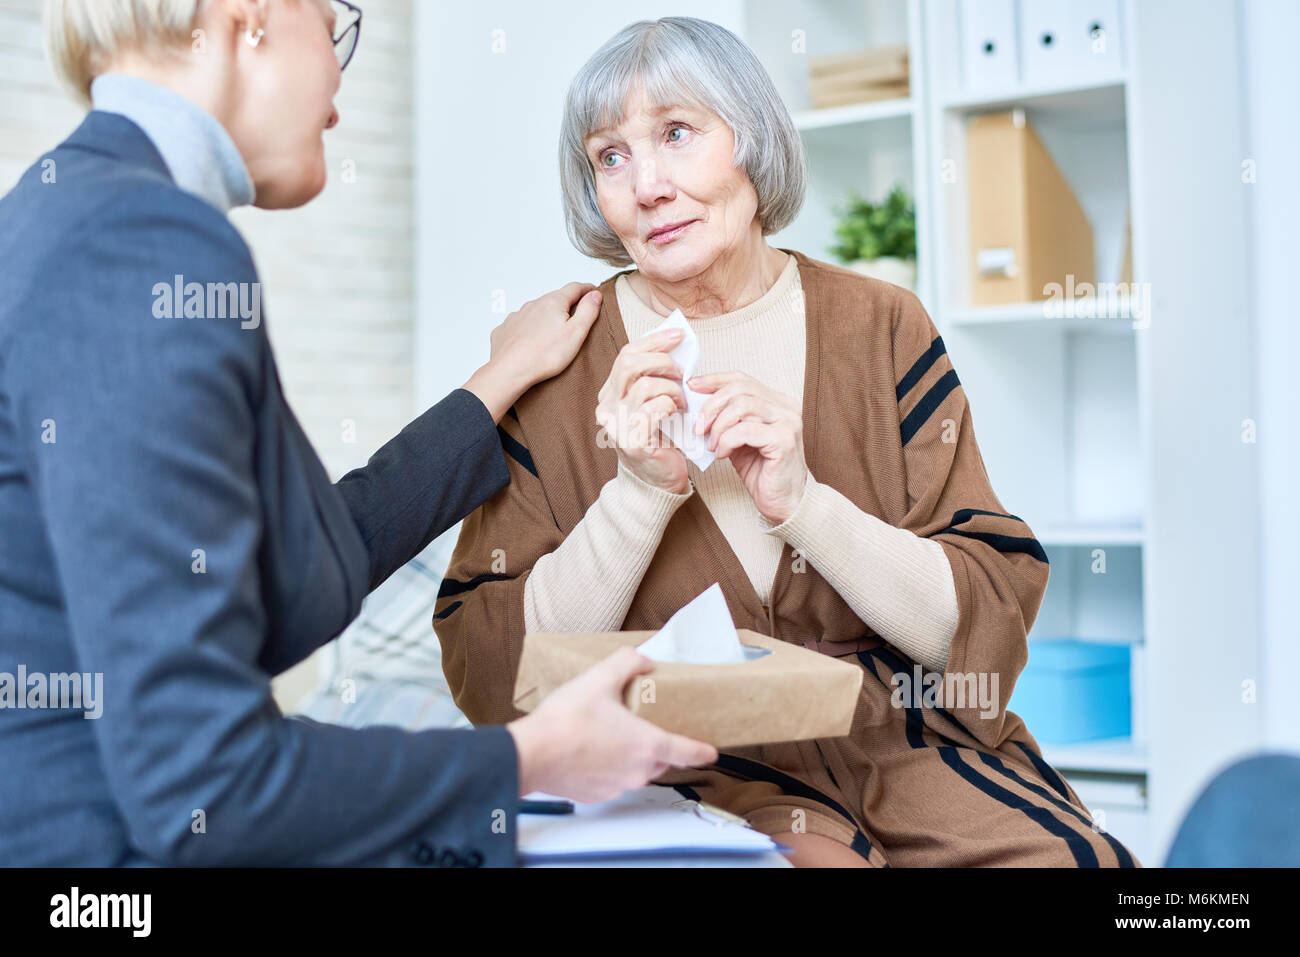 Crying Senior Woman in Therapy - Stock Image